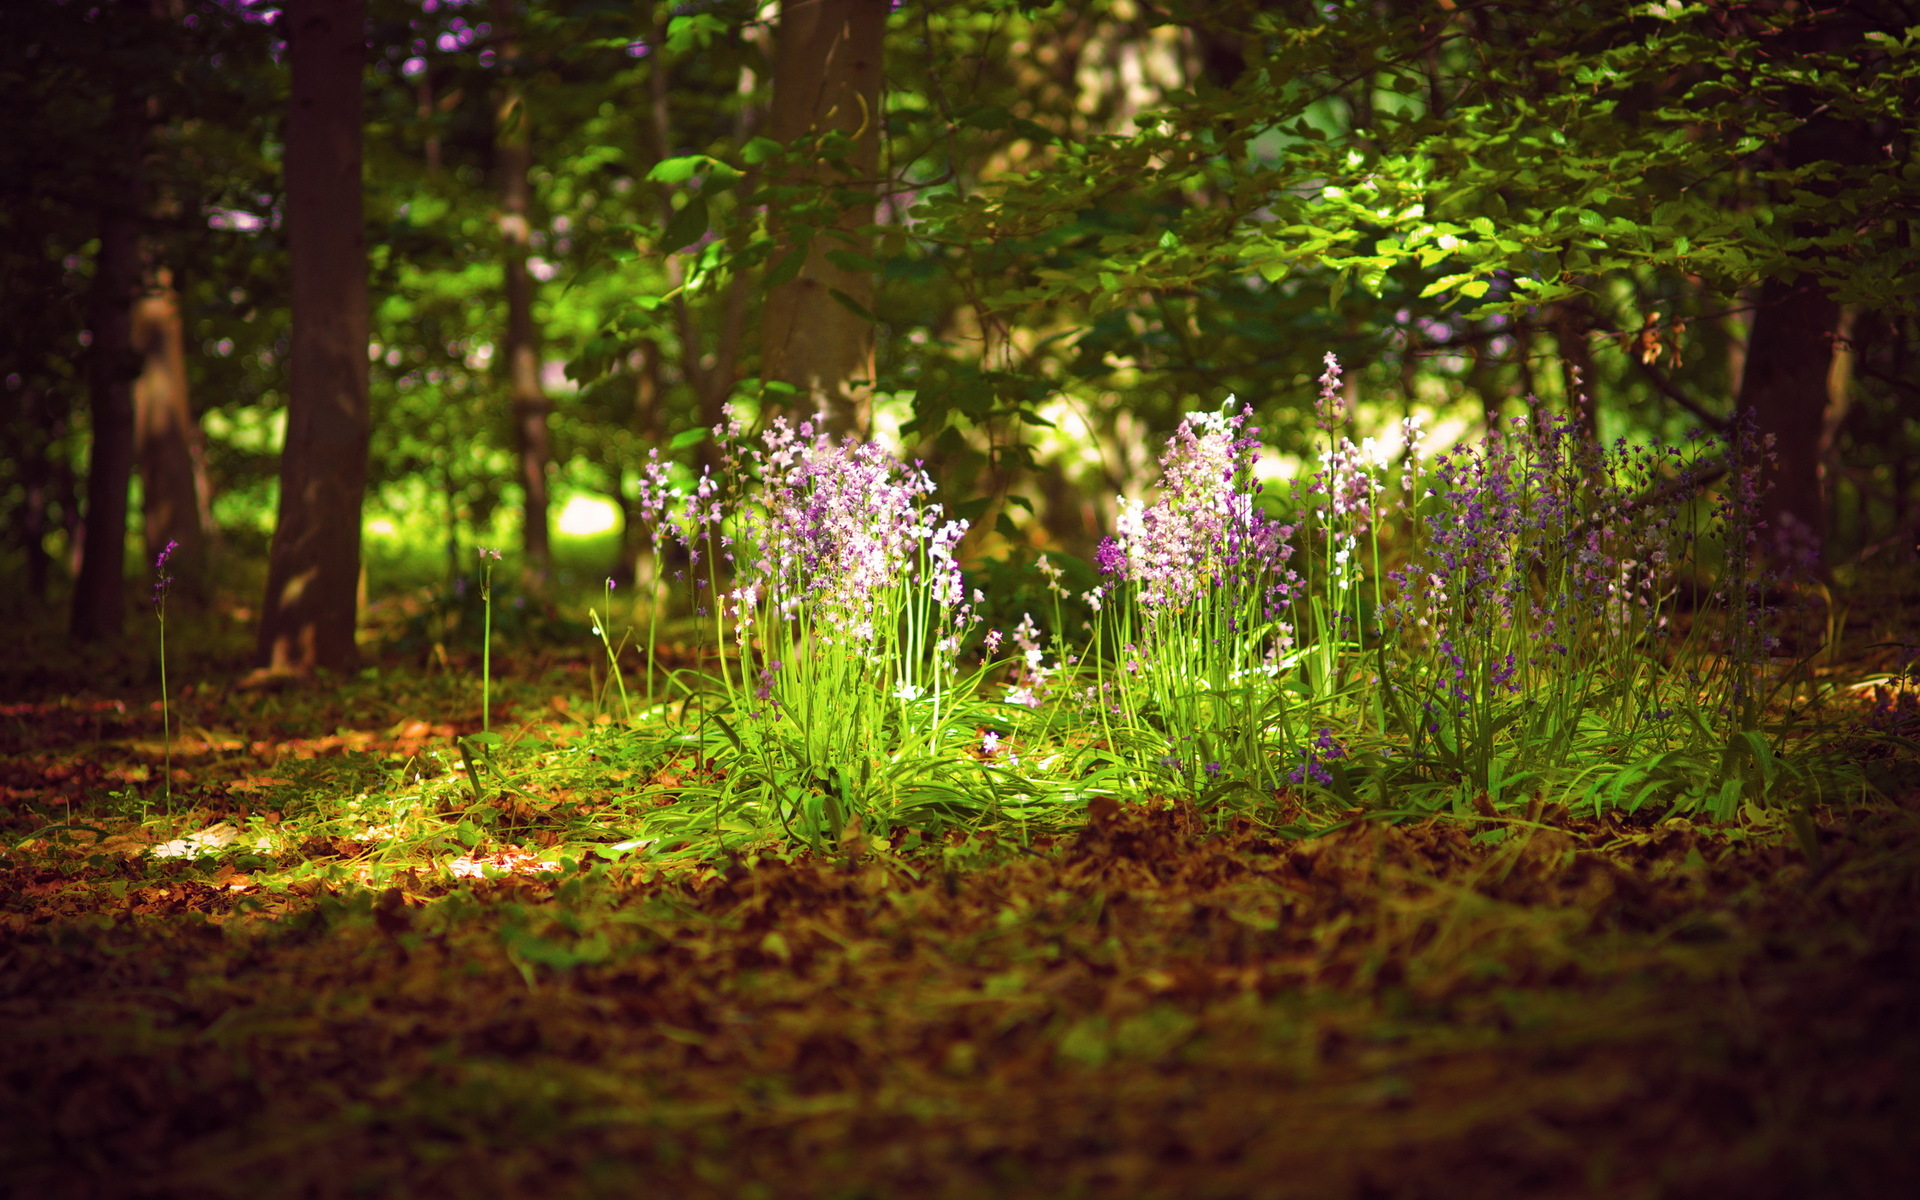 Earth - Forest  - Flower - Flowers - Nature - Landscape - Summer - Spring Wallpaper